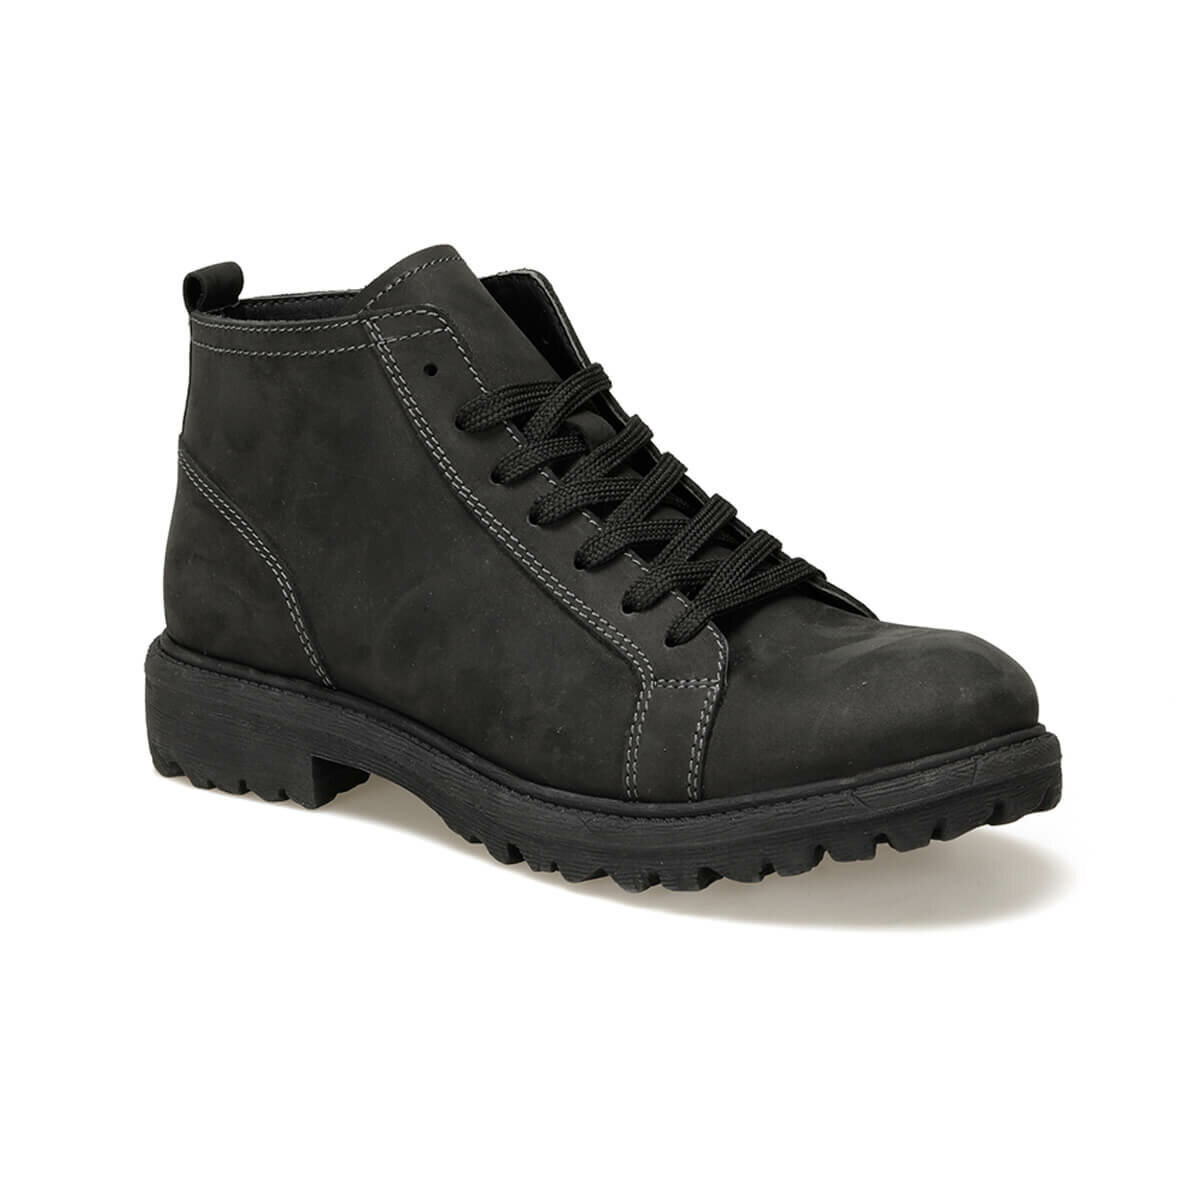 FLO 9902-1 Black Men Boots Forester